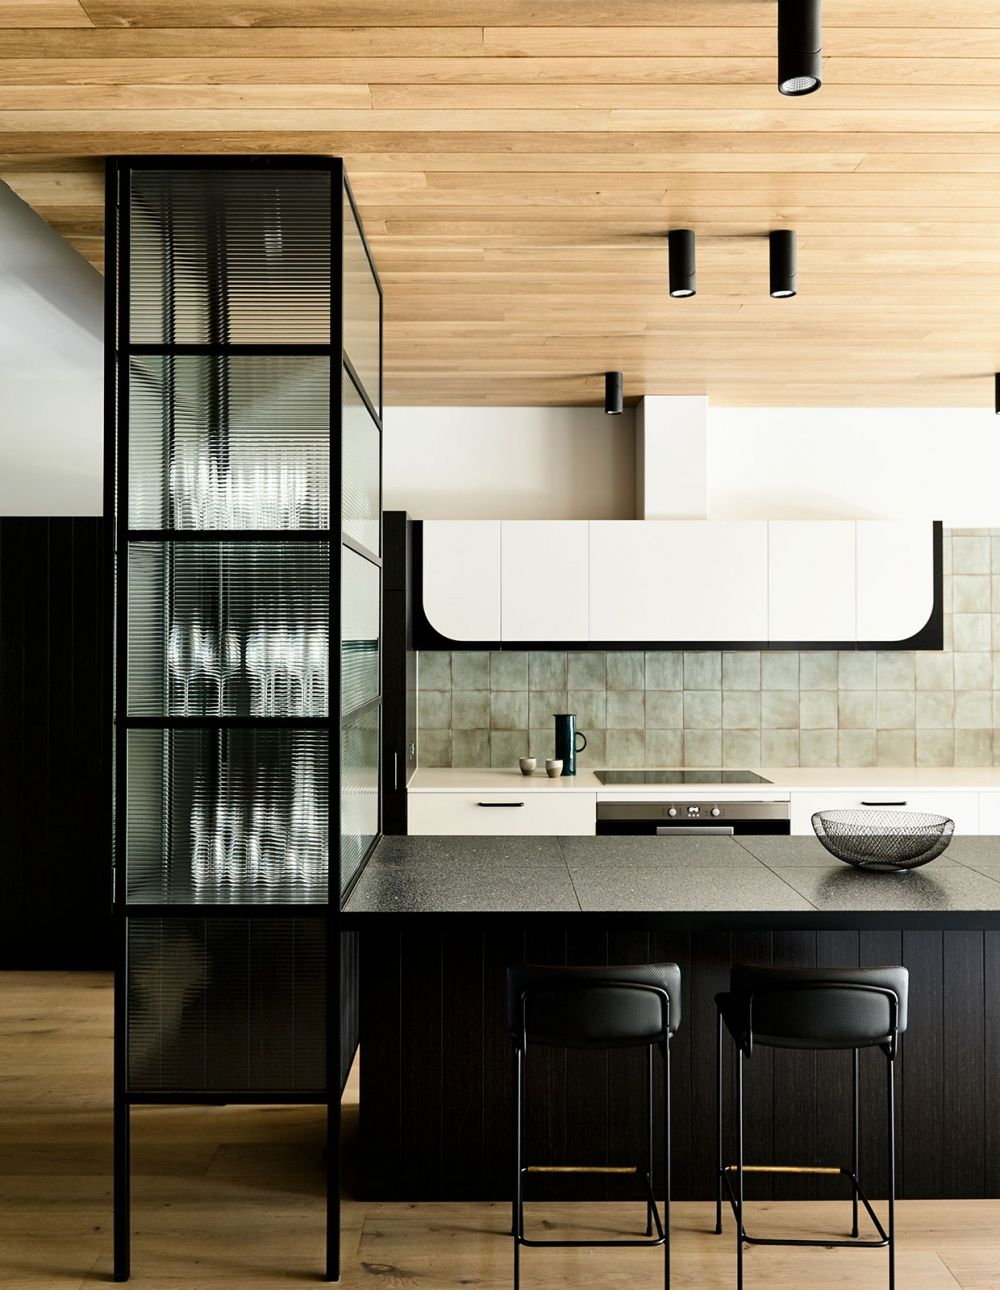 ... Australian Interior Design Awards. Fitzroy Residence By Doherty Design  Studio In Collaboration With Inarc Architects Received A Commendation In The